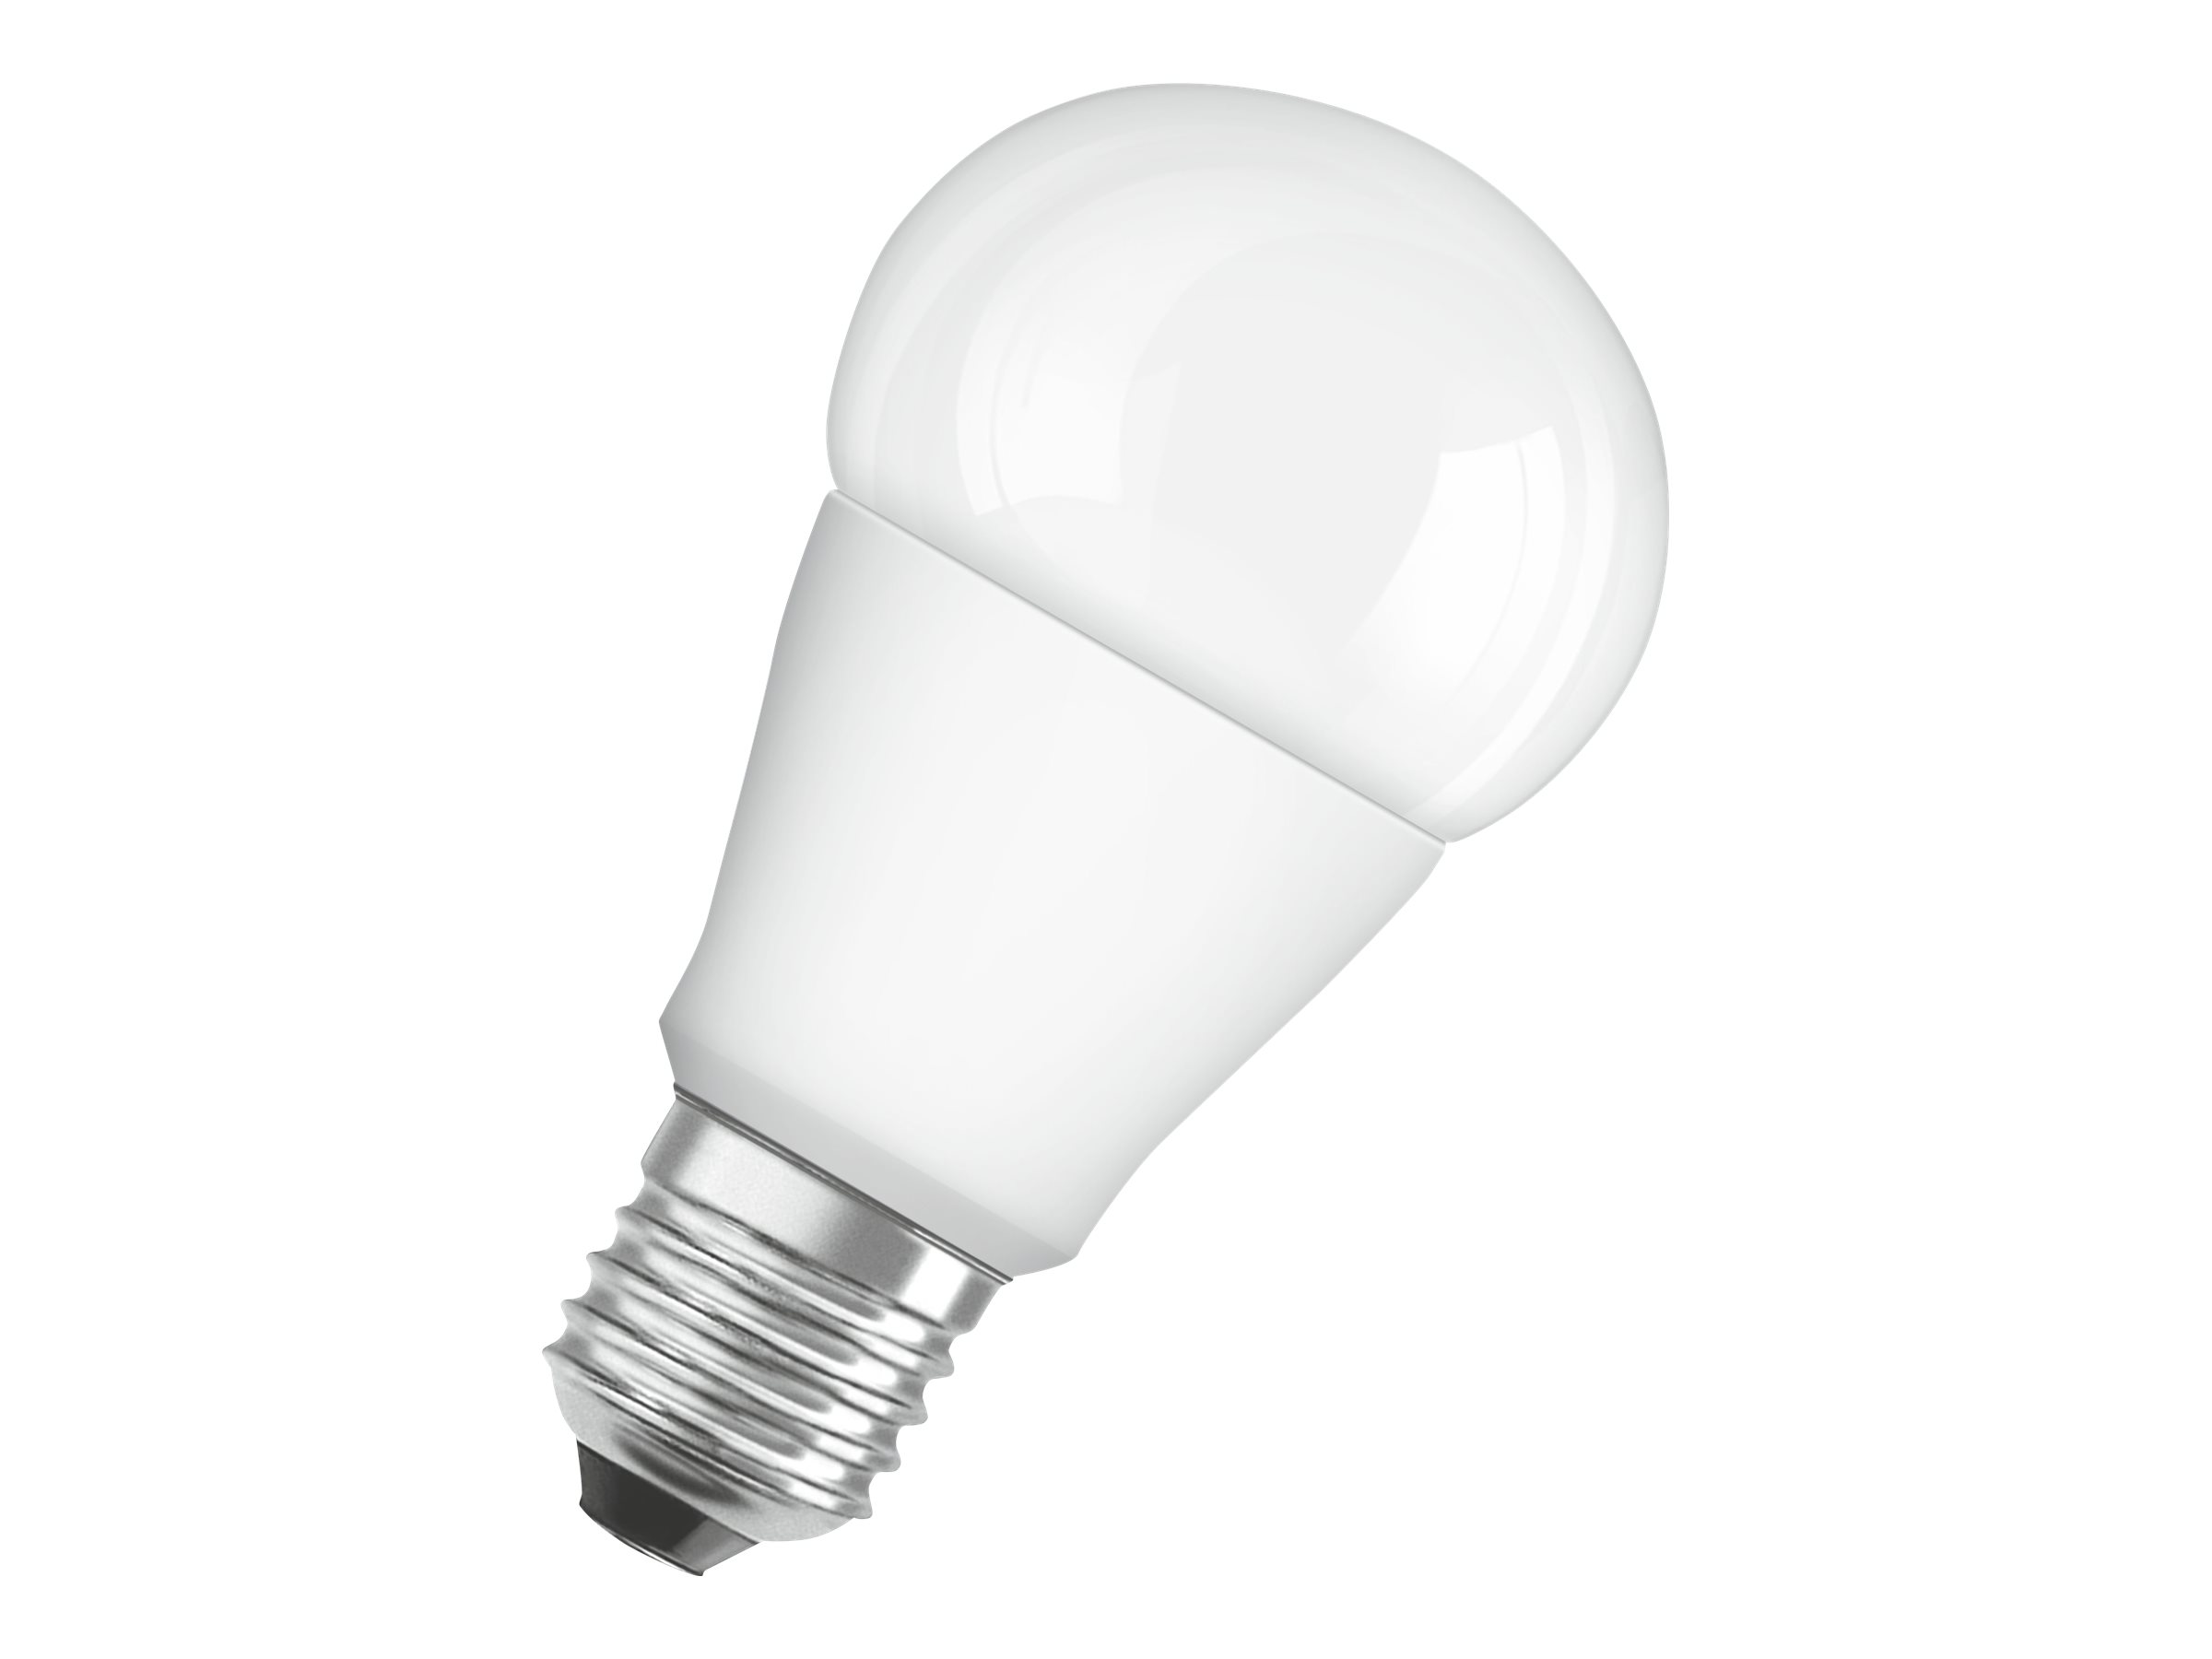 OSRAM PARATHOM advanced CLASSIC A - LED-Glühlampe - Form: A60 - matt Finish - E27 - 6 W (Entsprechung 40 W)